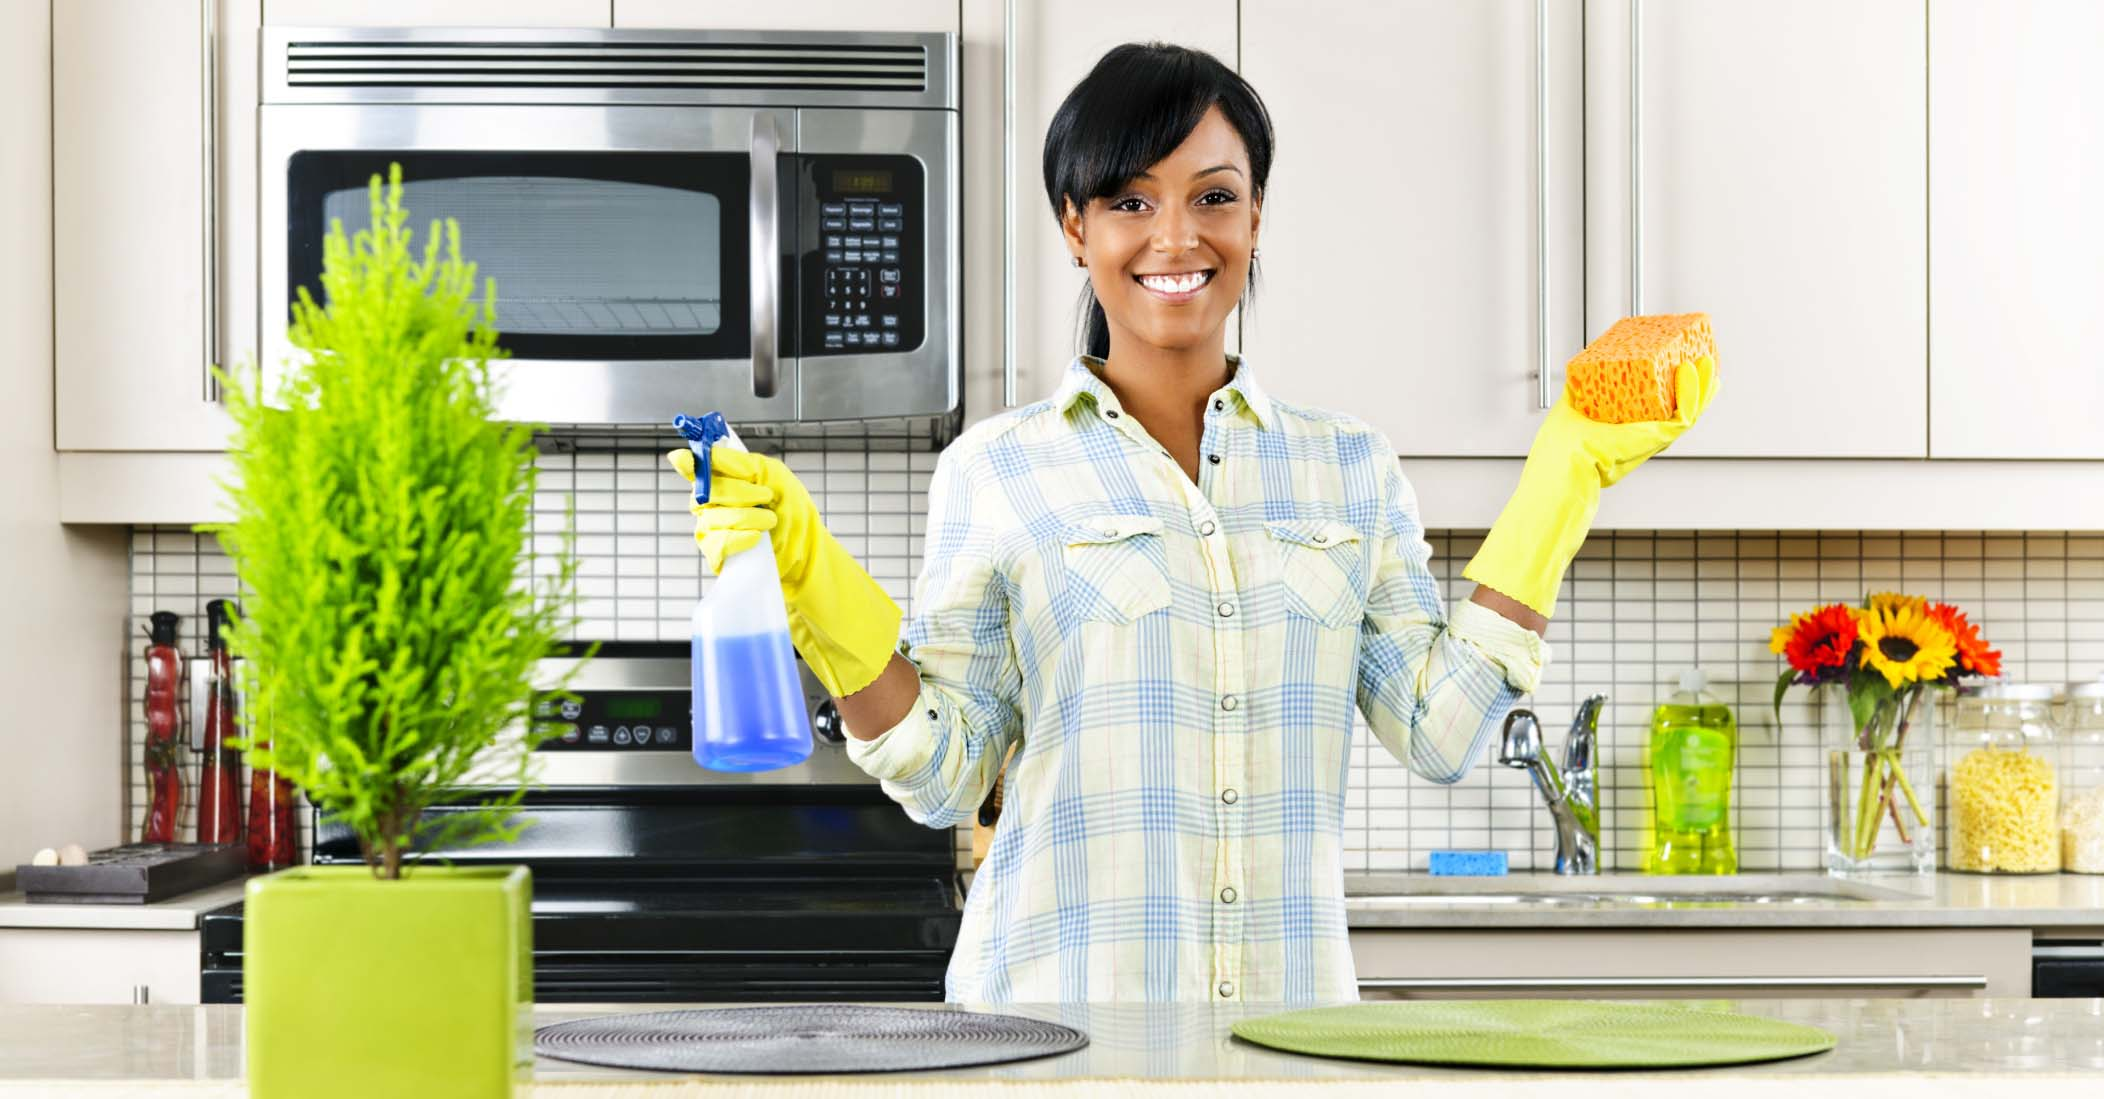 Do You Know You Can Save Money On Home Maintenance With These Simple Easy Hacks?